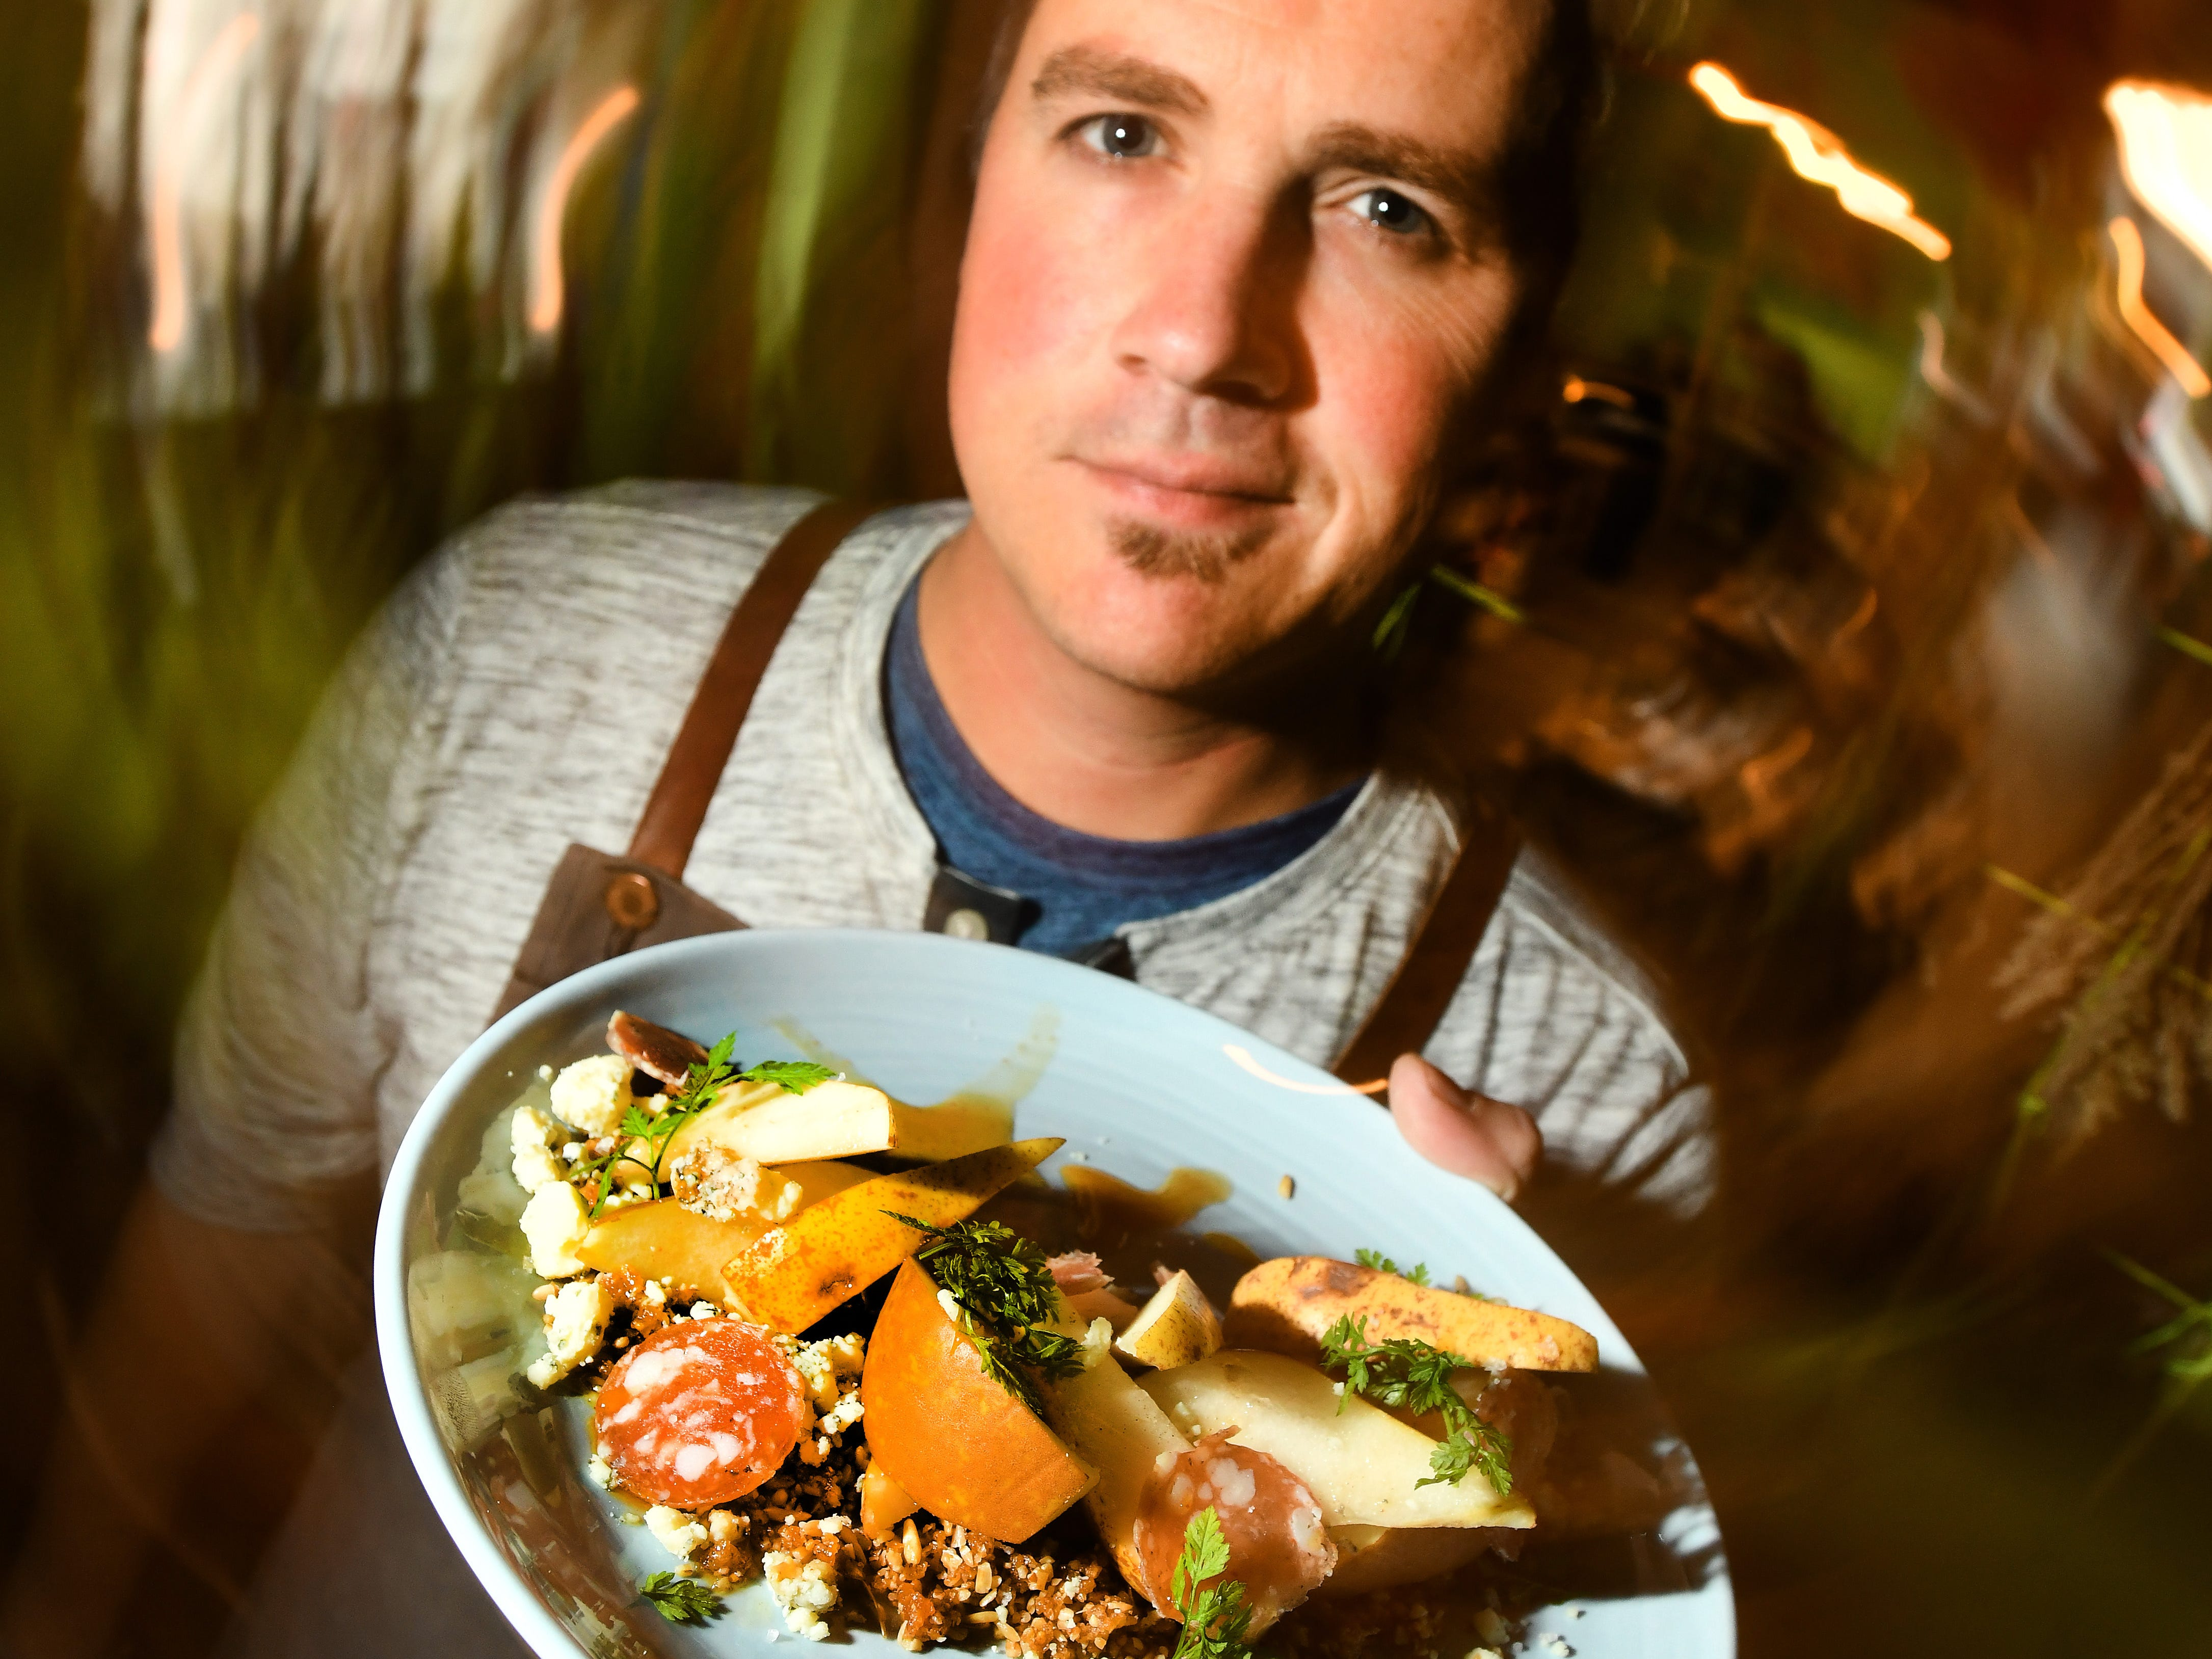 Chartreuse Kitchen & Cocktails chef Doug Hewitt jr. with Pears consisting of Bosc, Bartlett, fig and pecan granola, cider honey, cave aged blue cheese and sopressata.